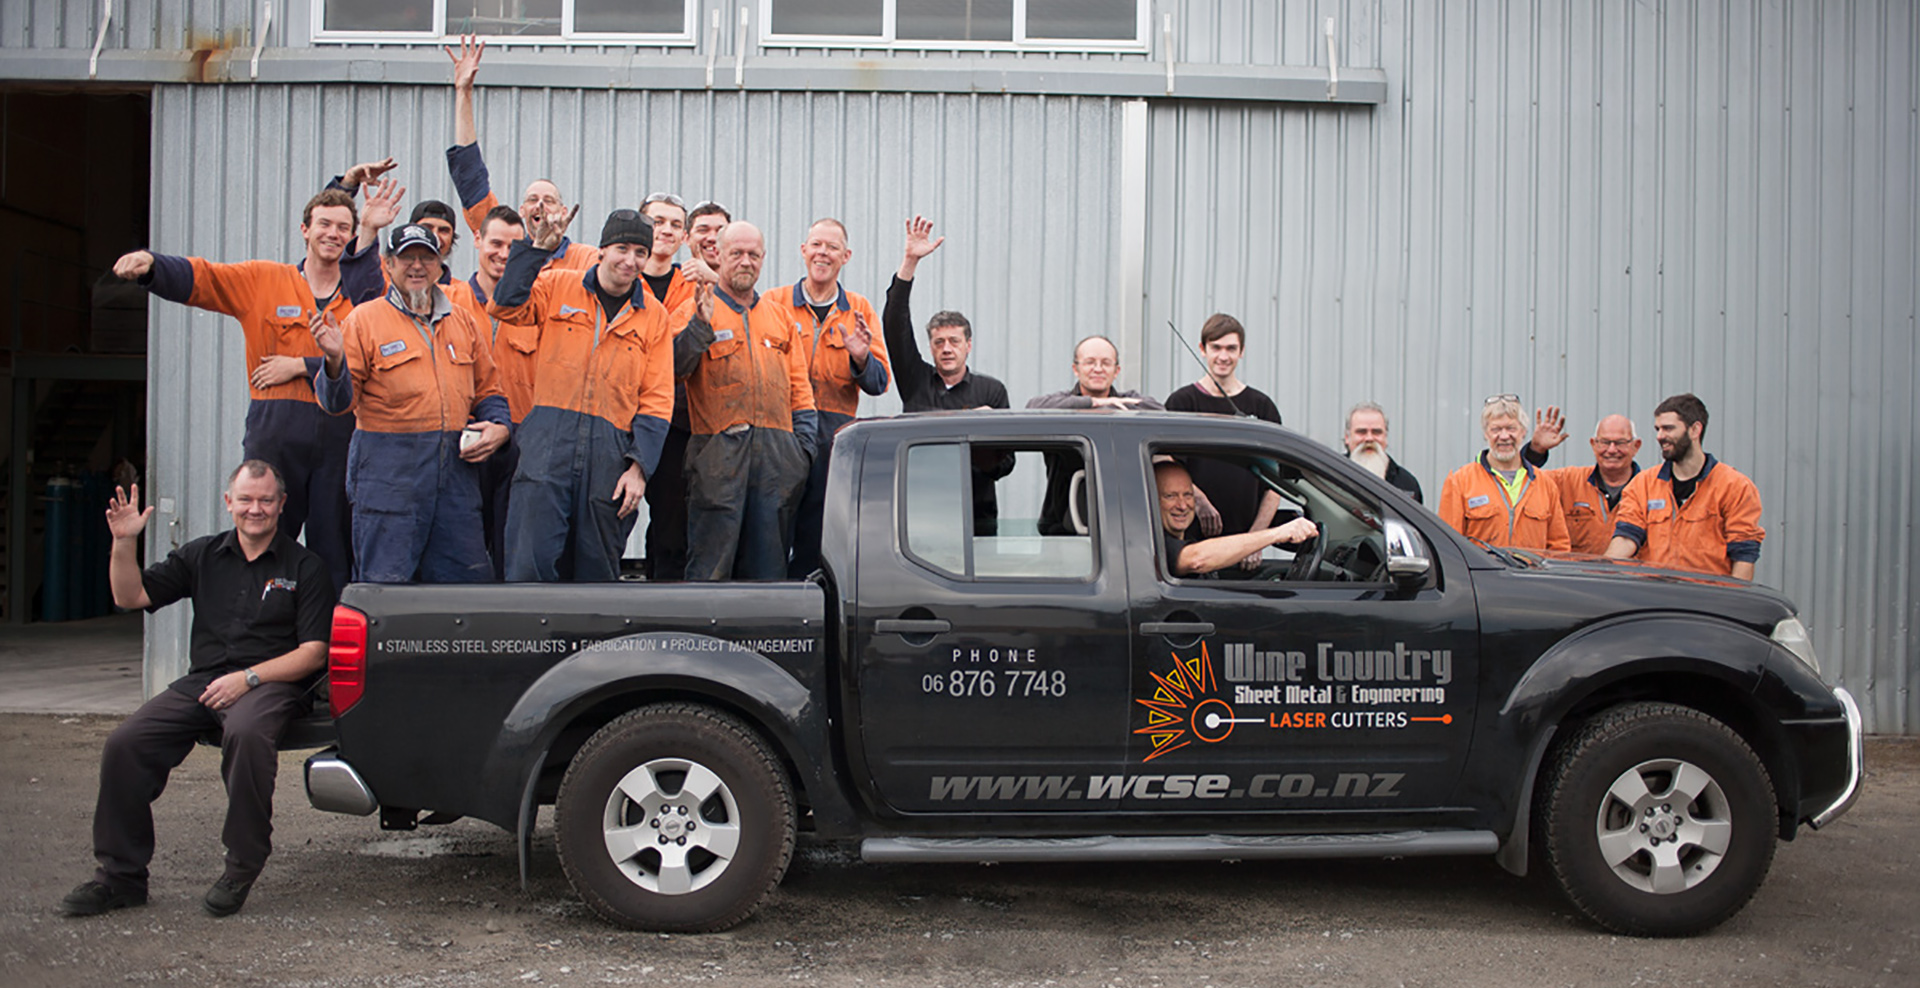 Wine Country Sheet Metal Management team